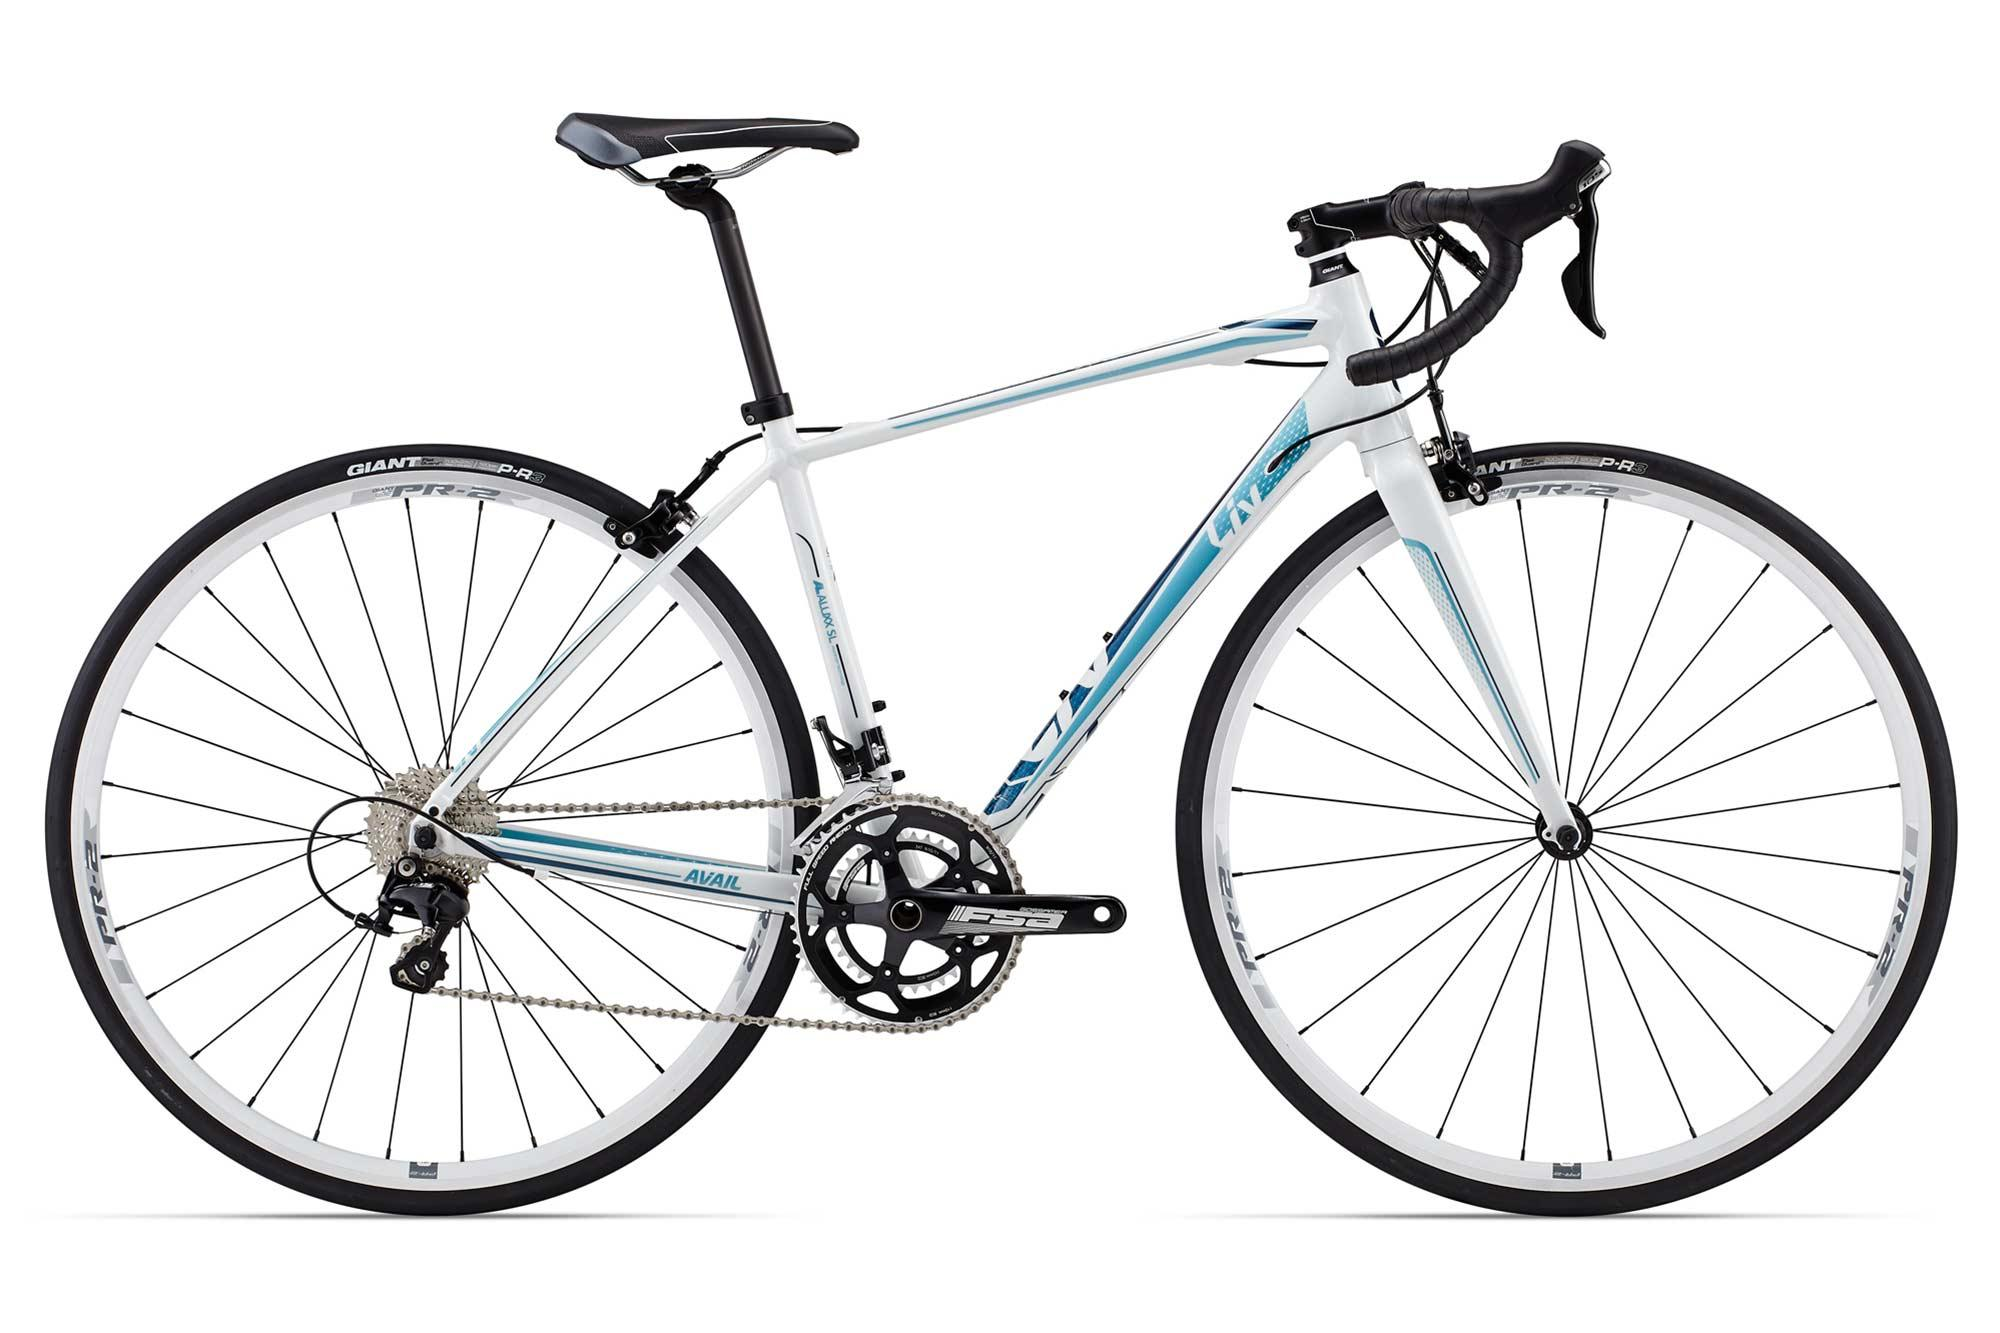 2015 Giant Bikes Usa Avail